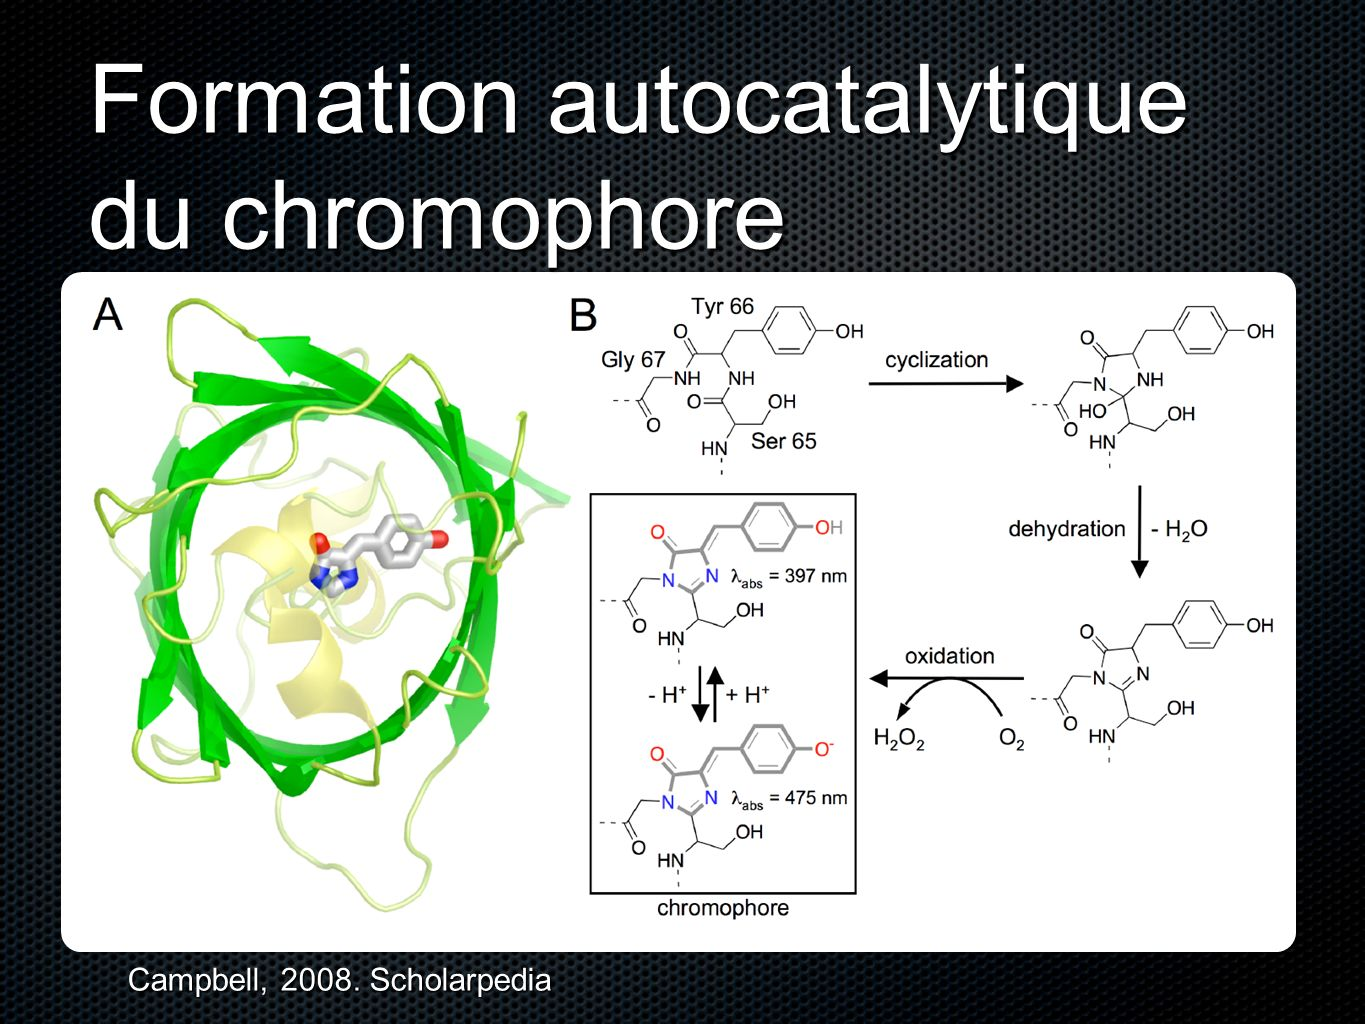 Formation autocatalytique du chromophore